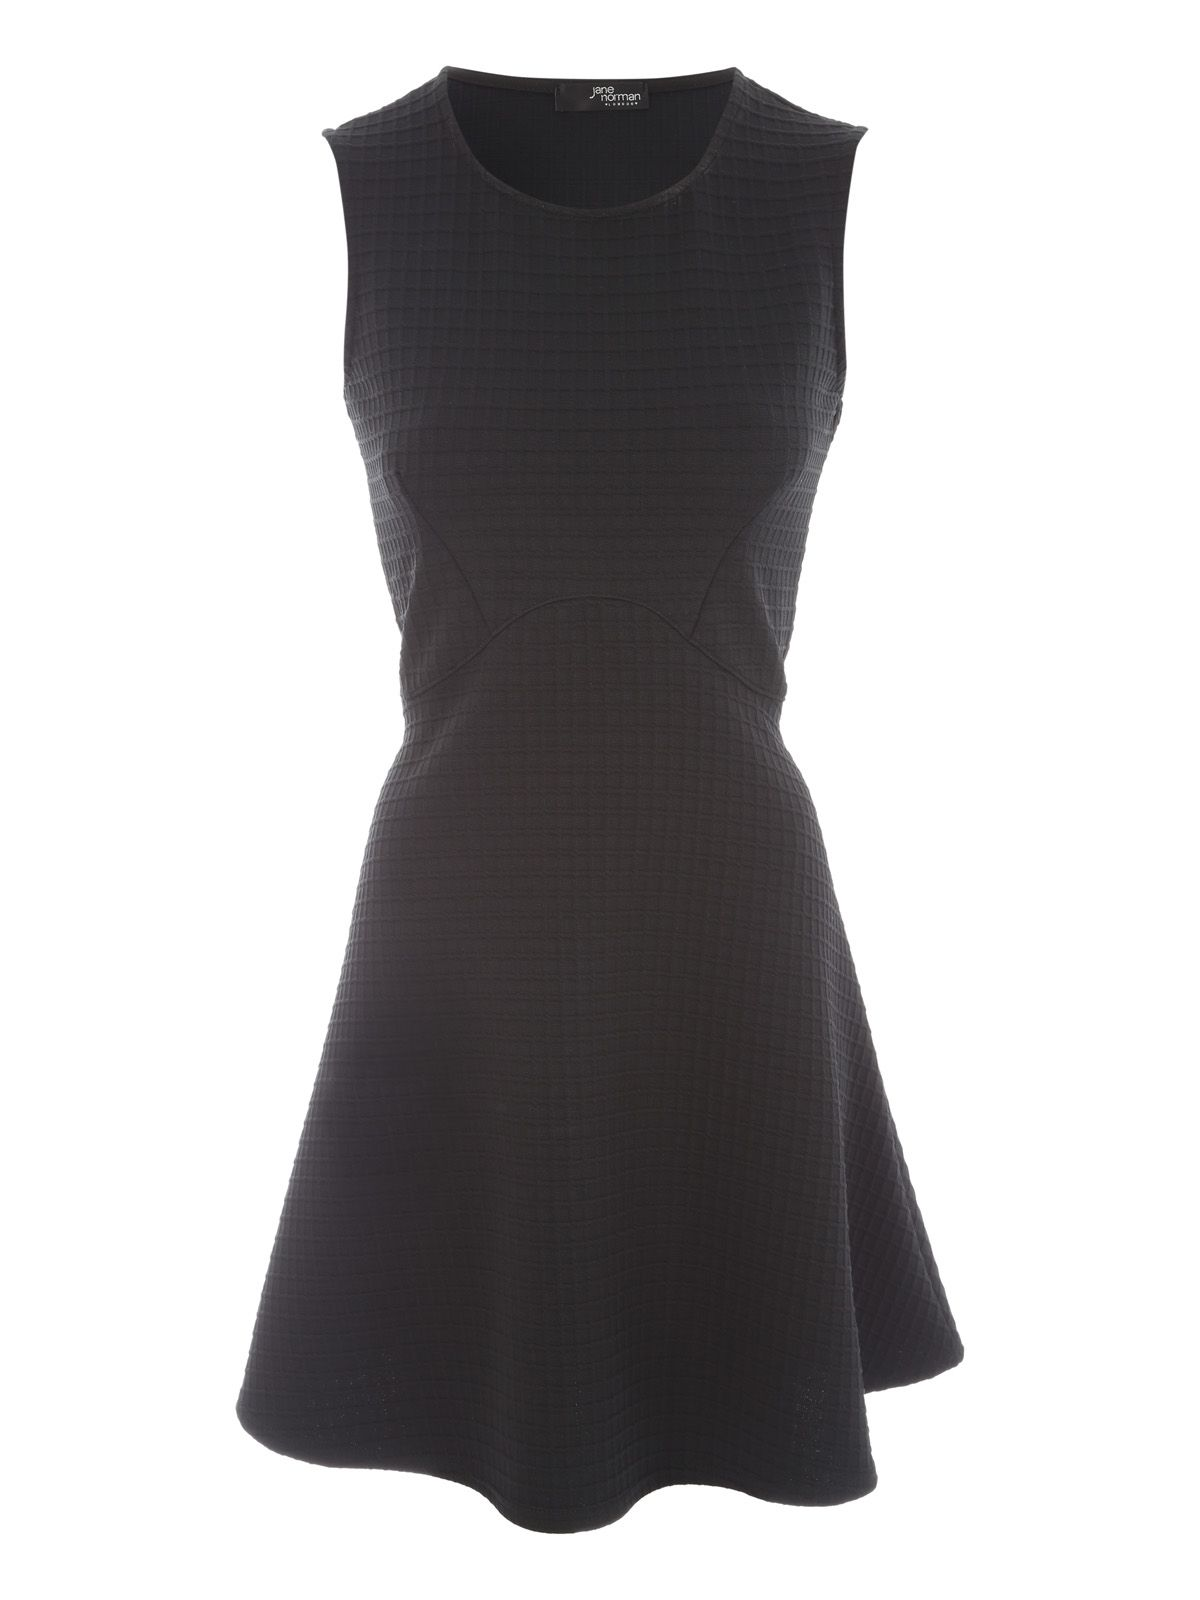 Jane Norman Textured Fit And Flare Dress, Black